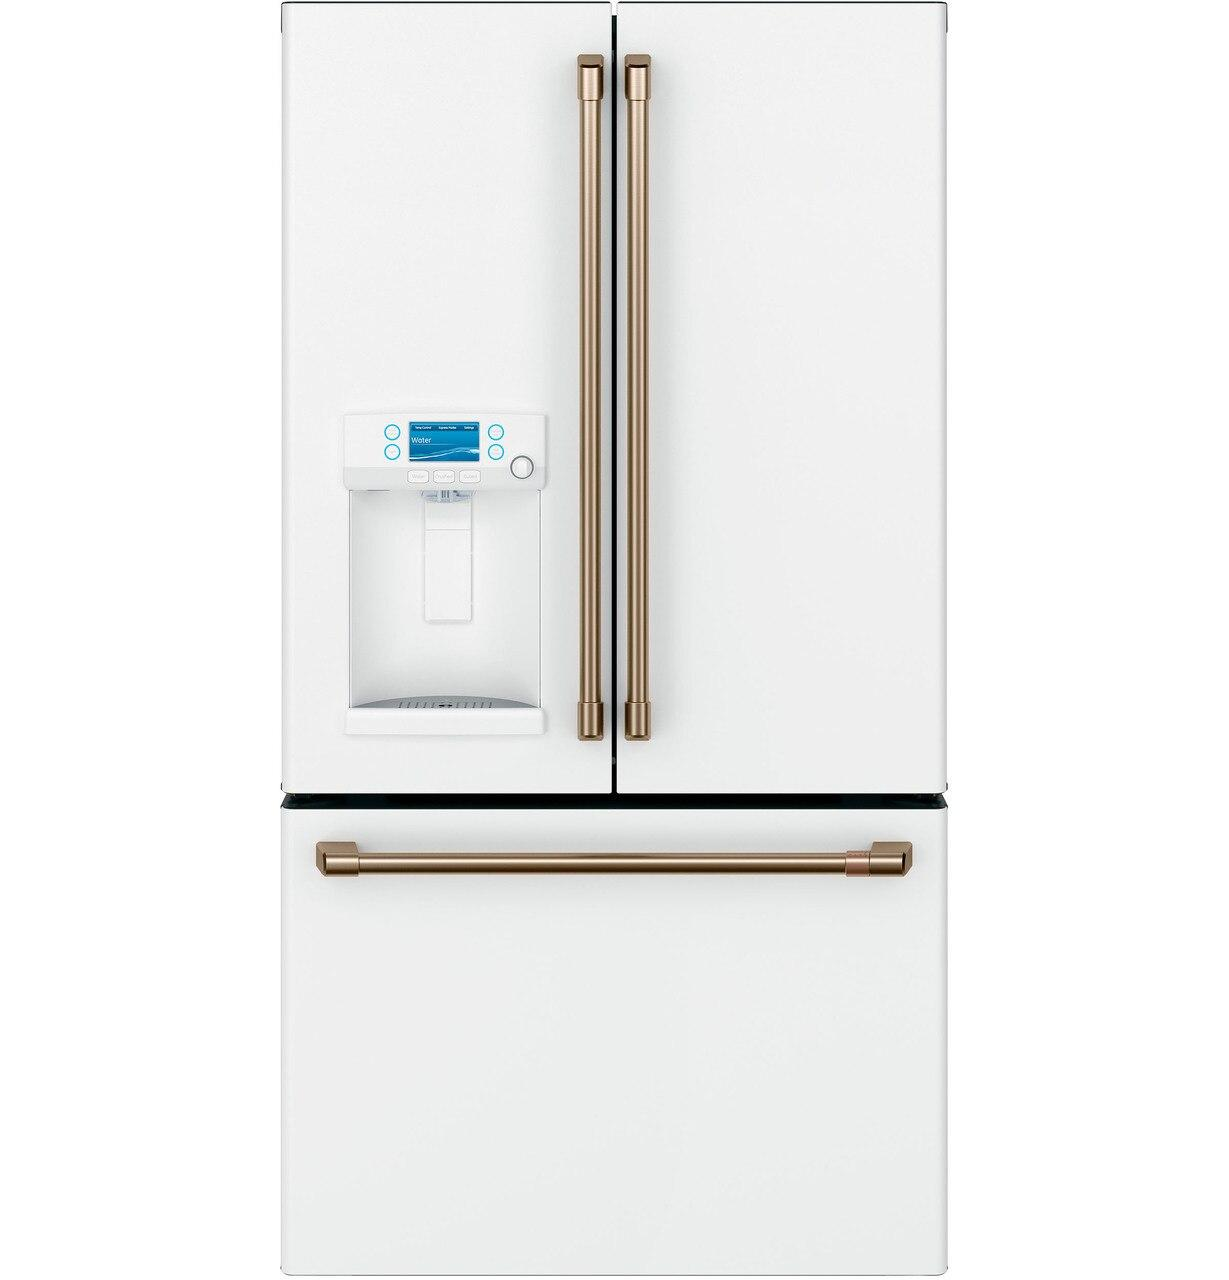 Cafe AppliancesEnergy Star® 22.1 Cu. Ft. Smart Counter-Depth French-Door Refrigerator With Hot Water Dispenser